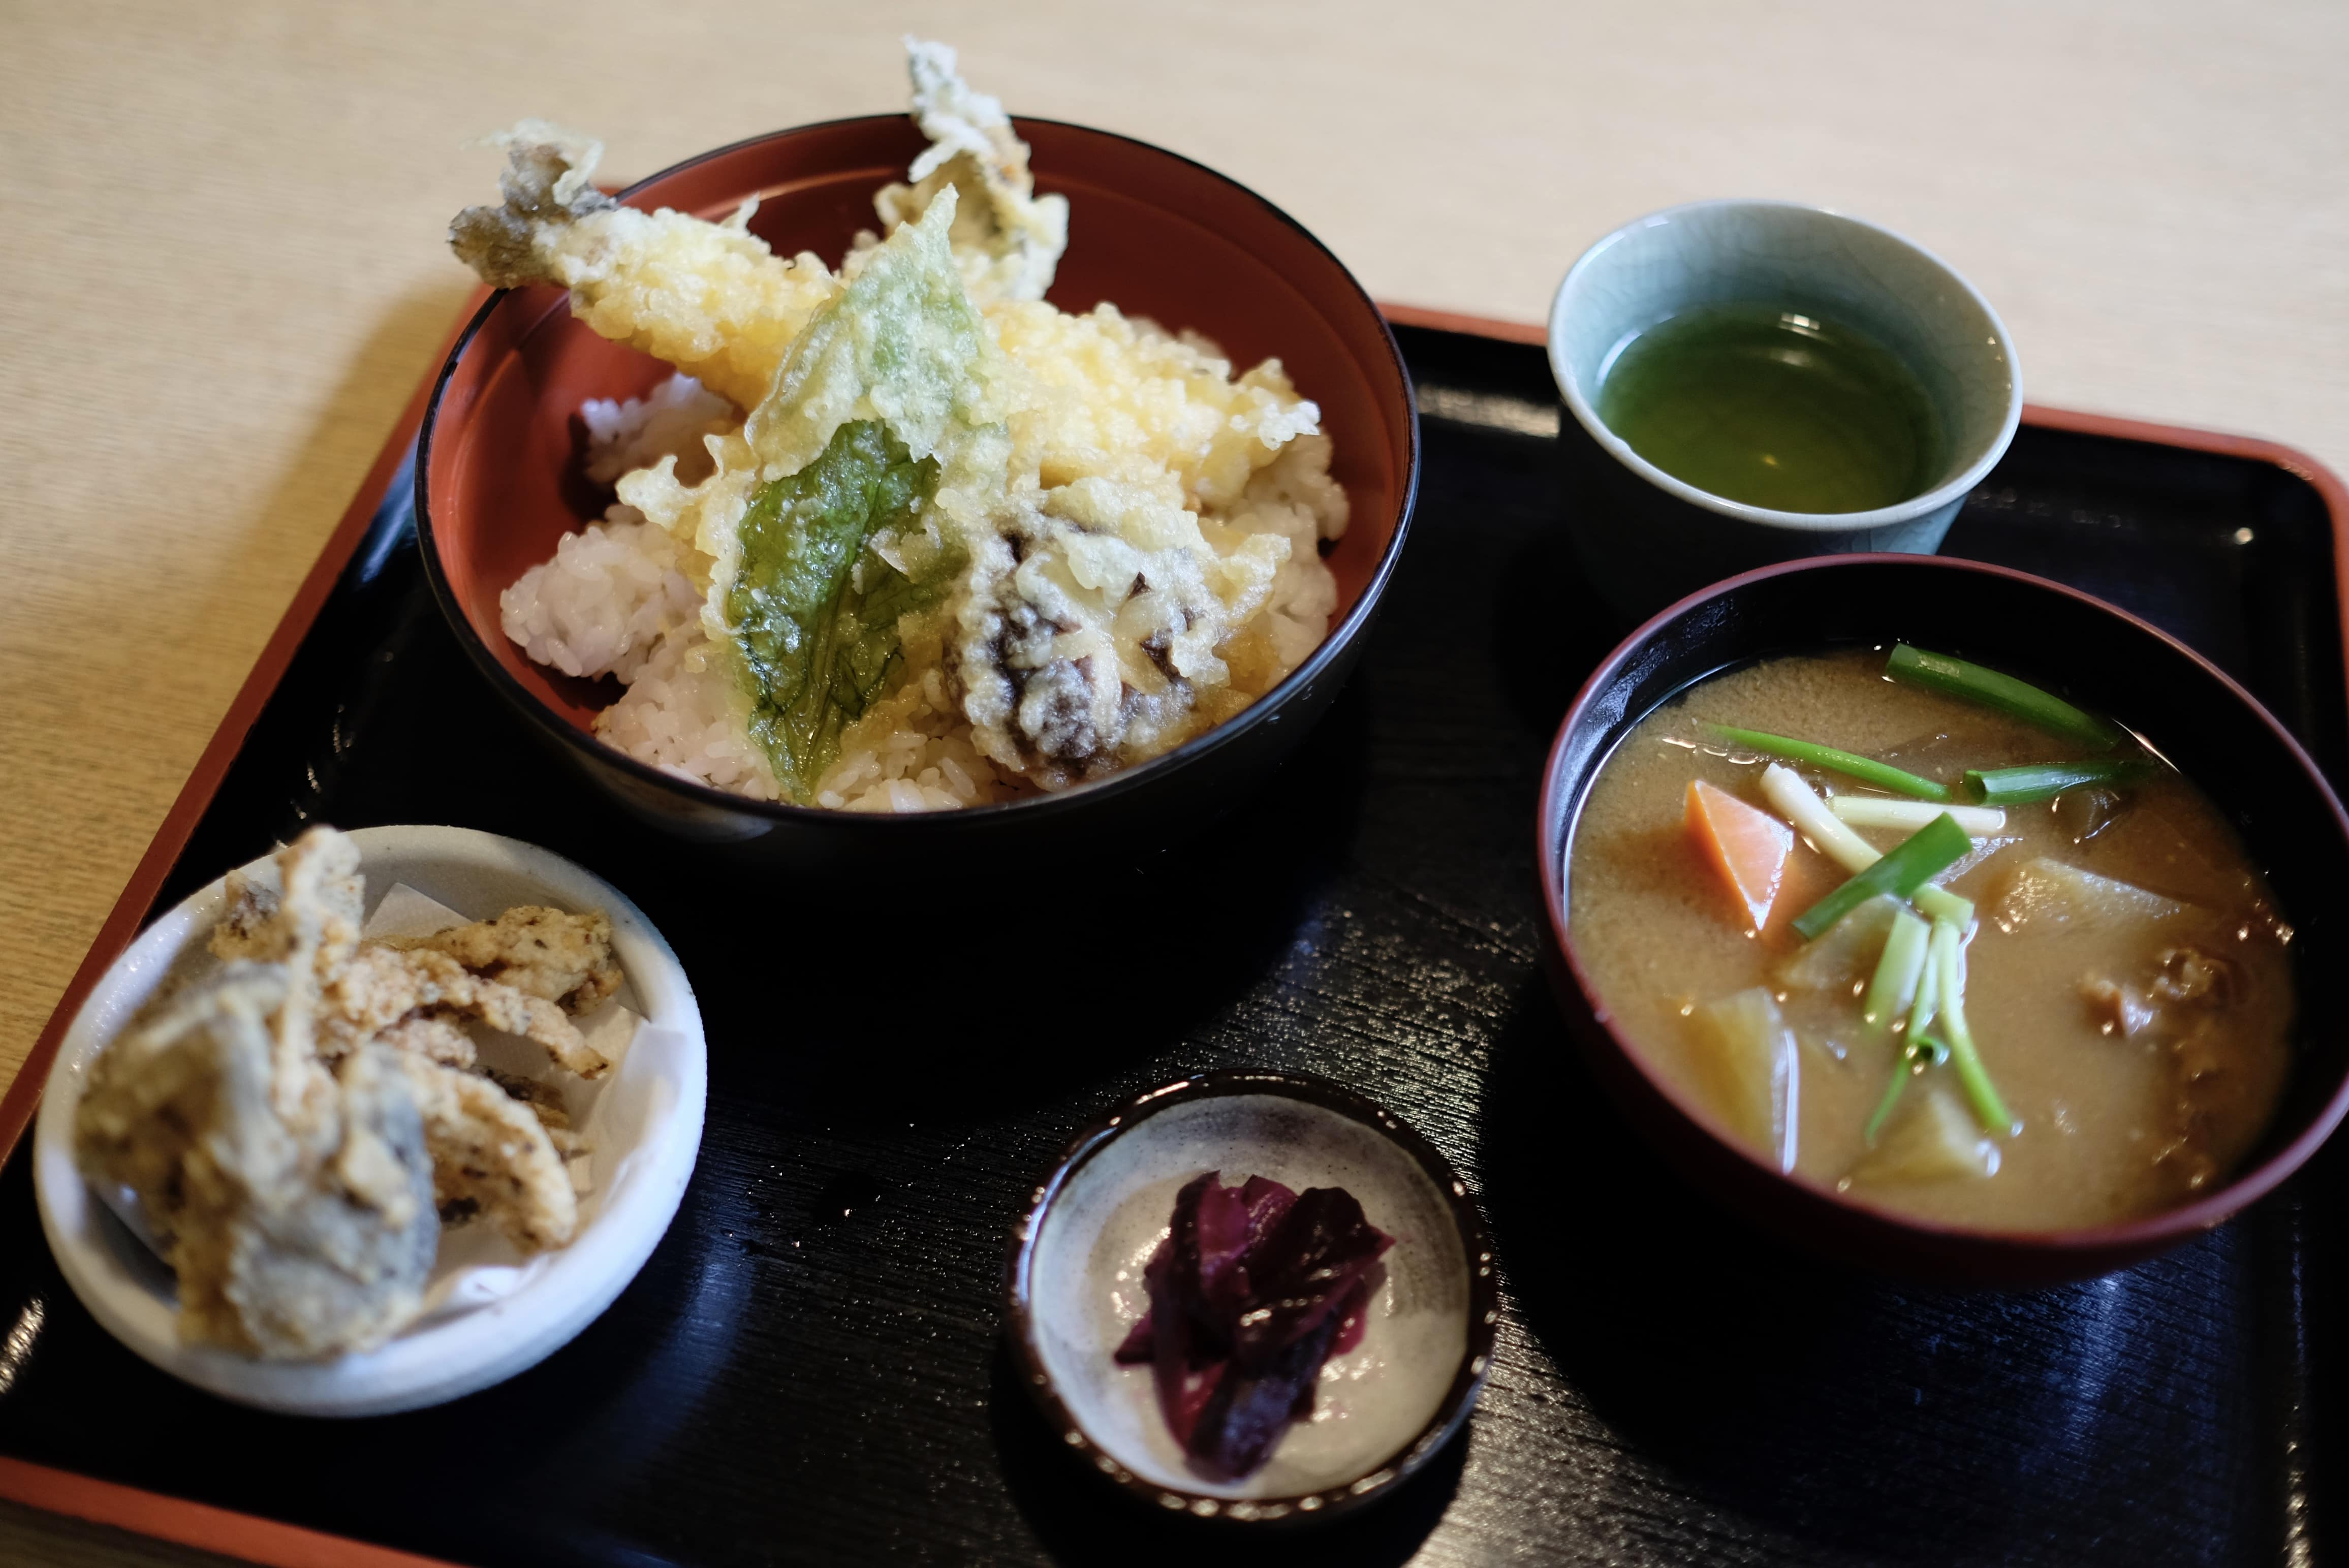 Lunch at Shikibidani Onsen (四季美谷温泉)